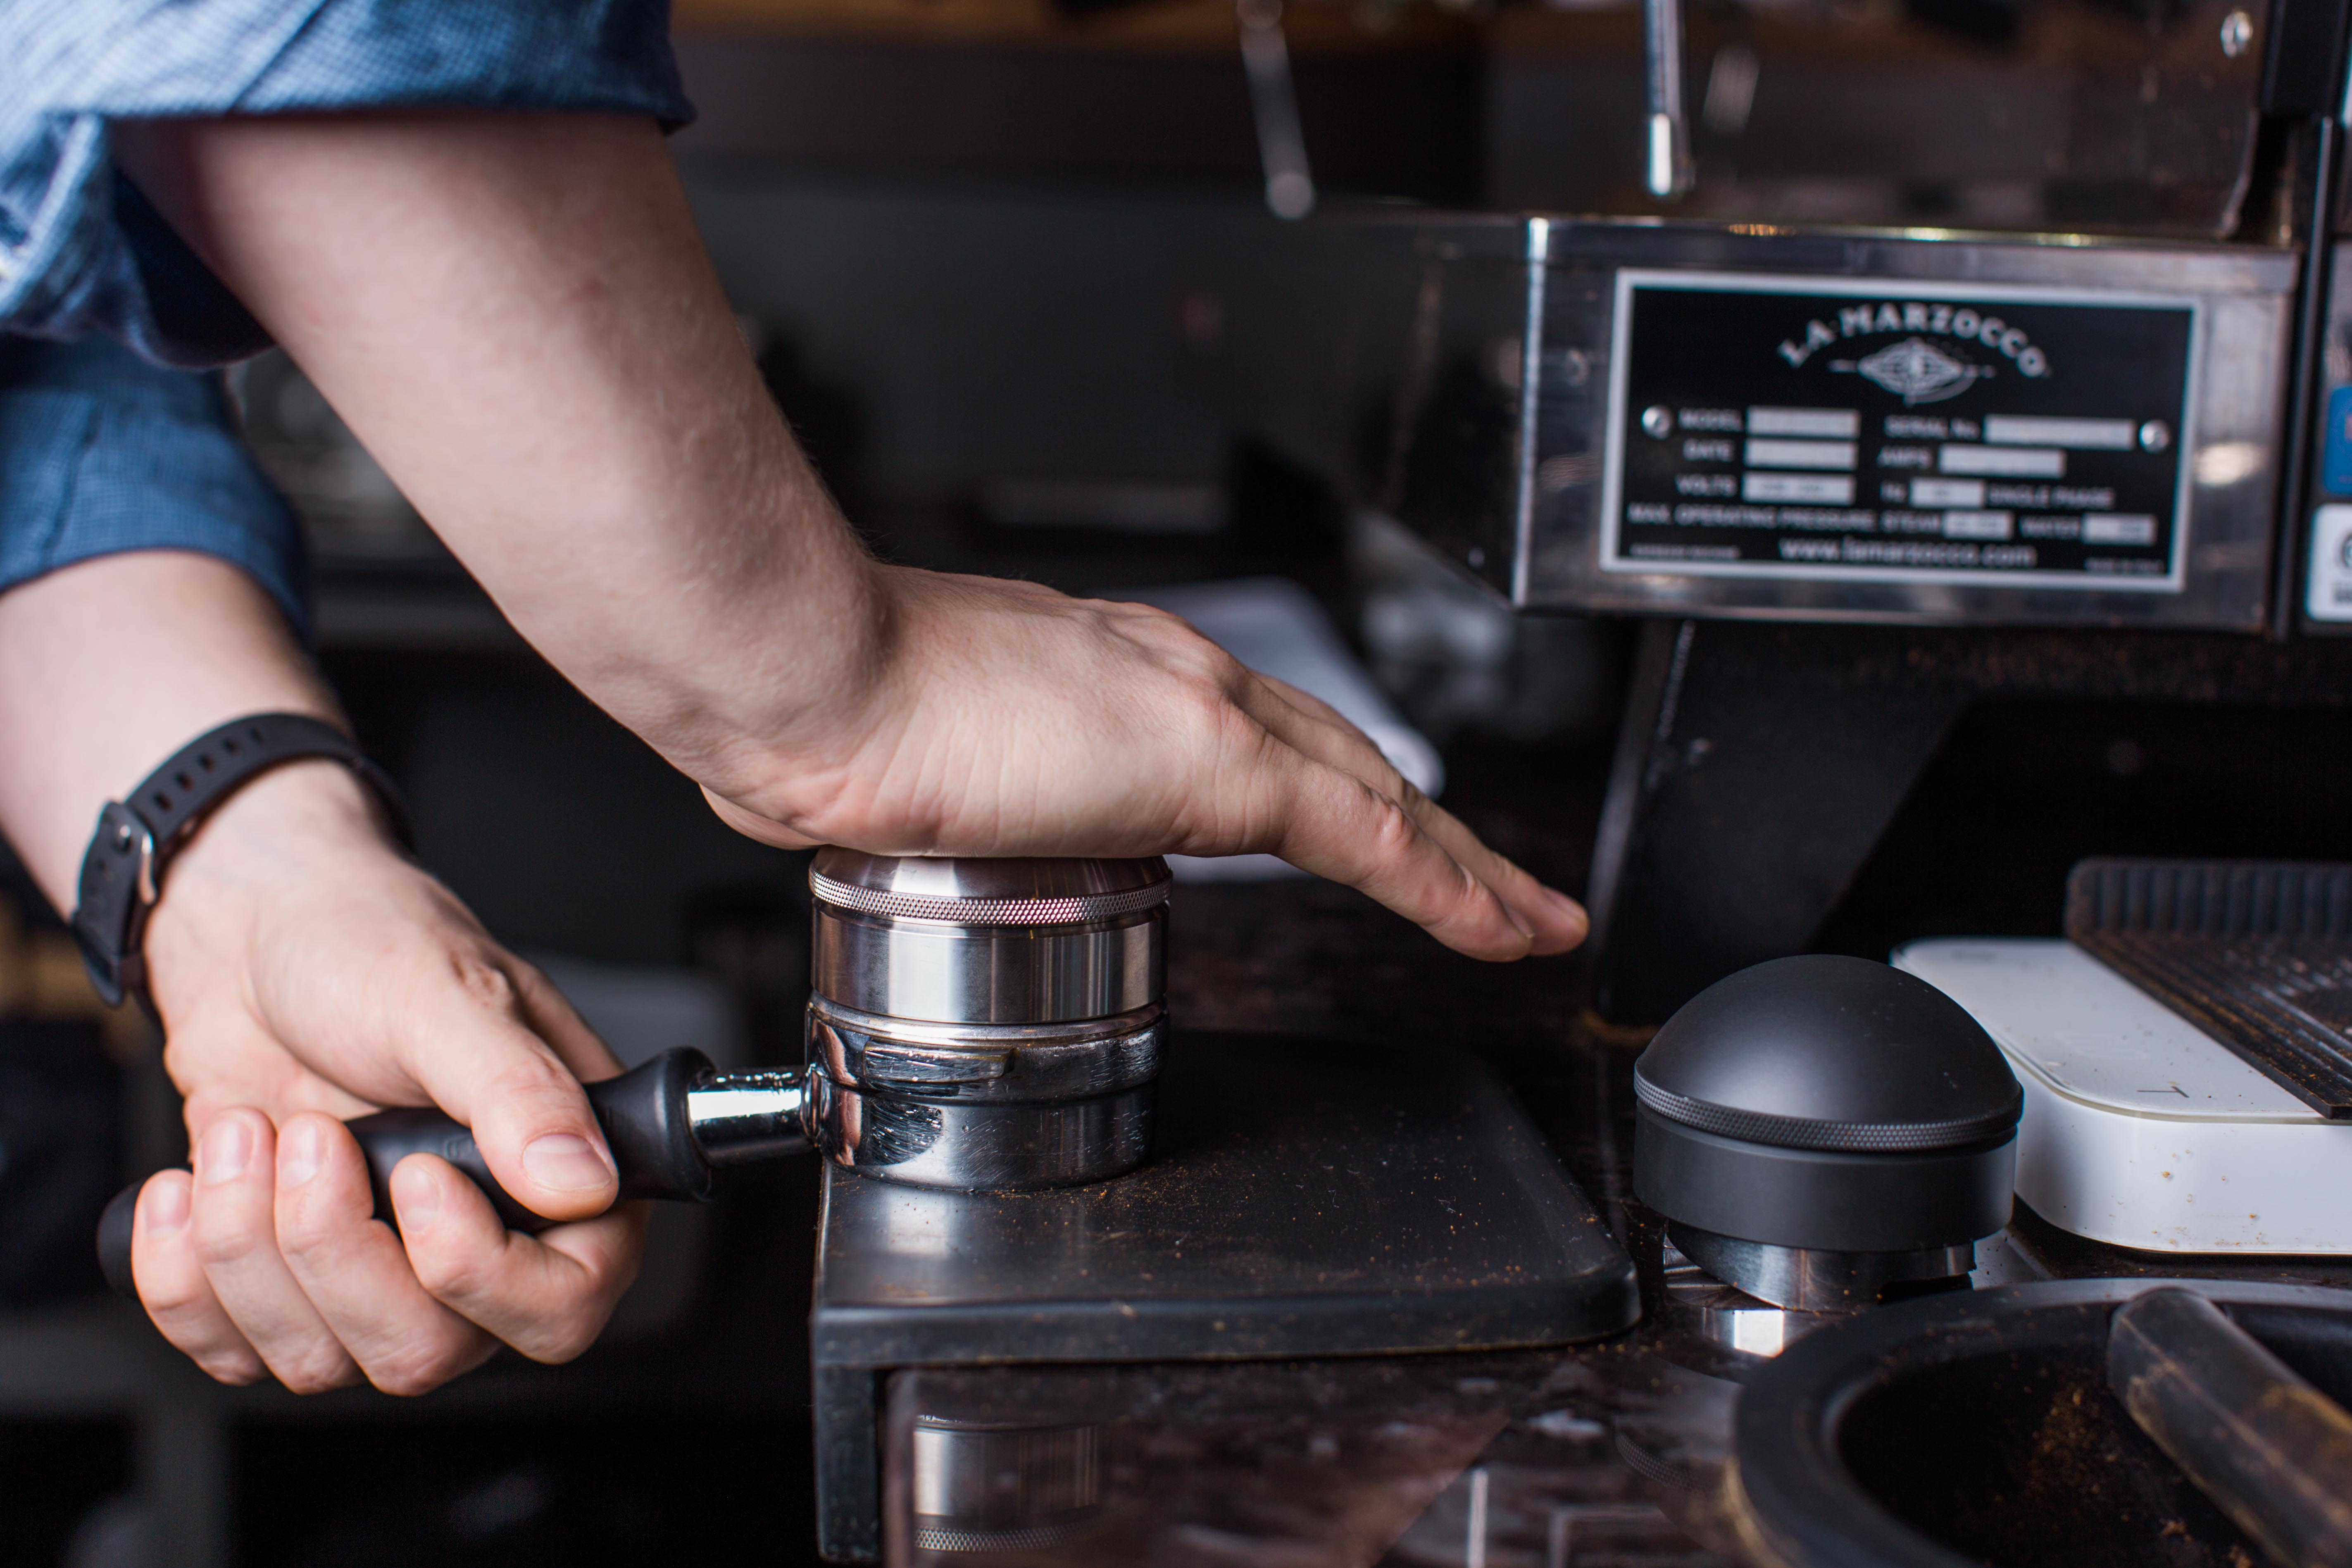 Tamping with the Buzzer to a precise and repeatable depth is easy for any barista you have on bar